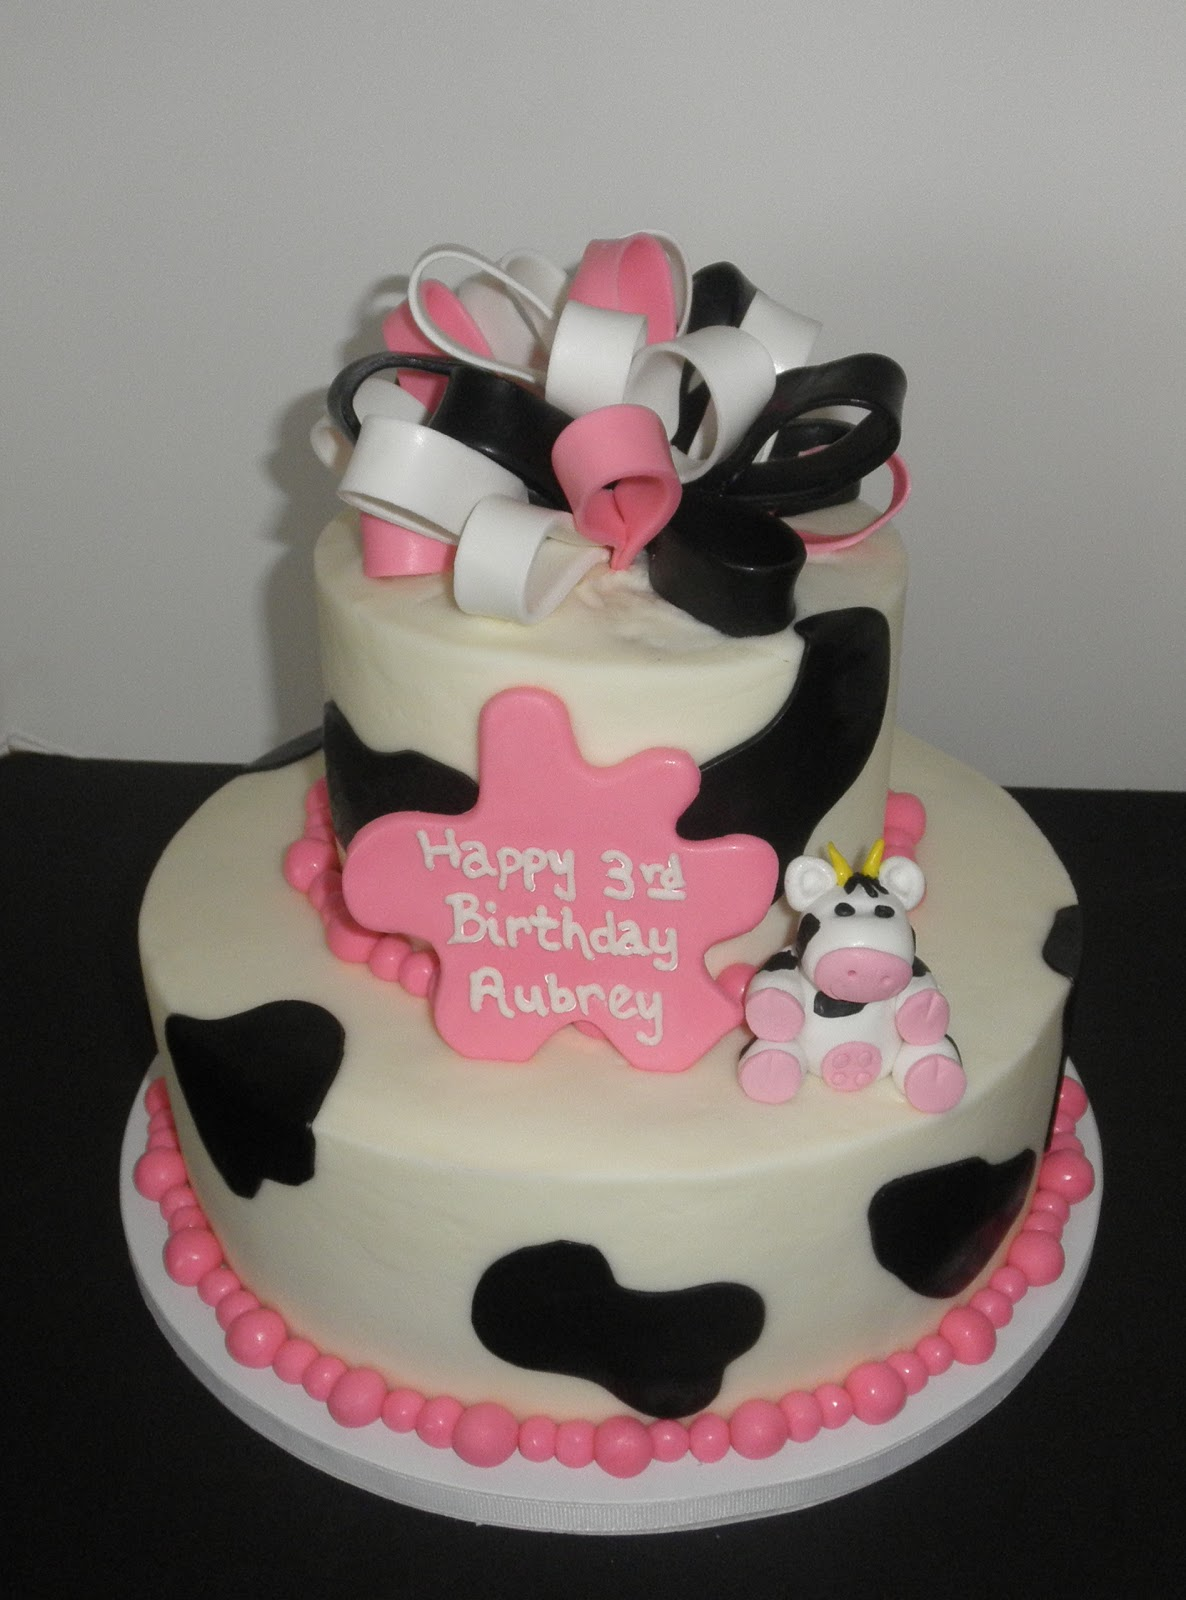 Sweet Ts Cake Design Cow And Hot Pink Black White Ribbon 3rd